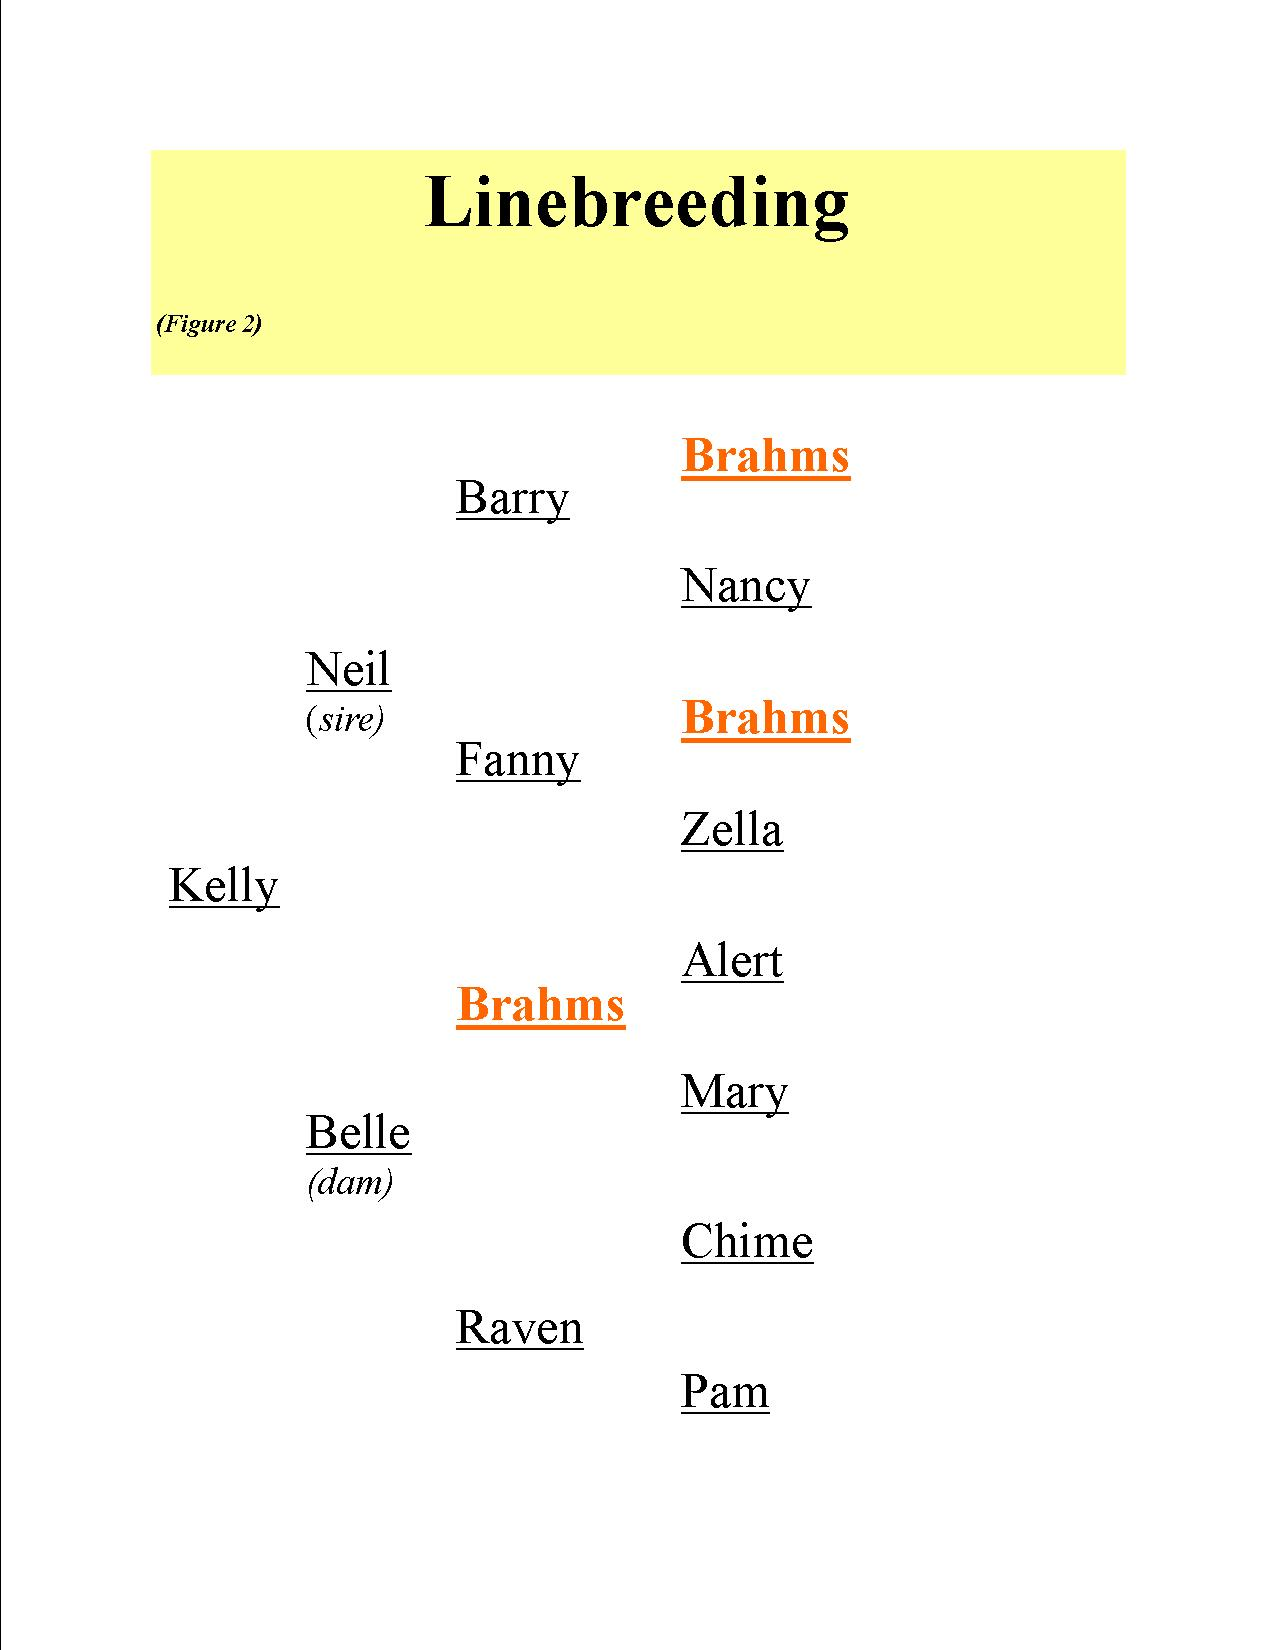 Inbreeding Vs Linebreeding. Is there a difference?